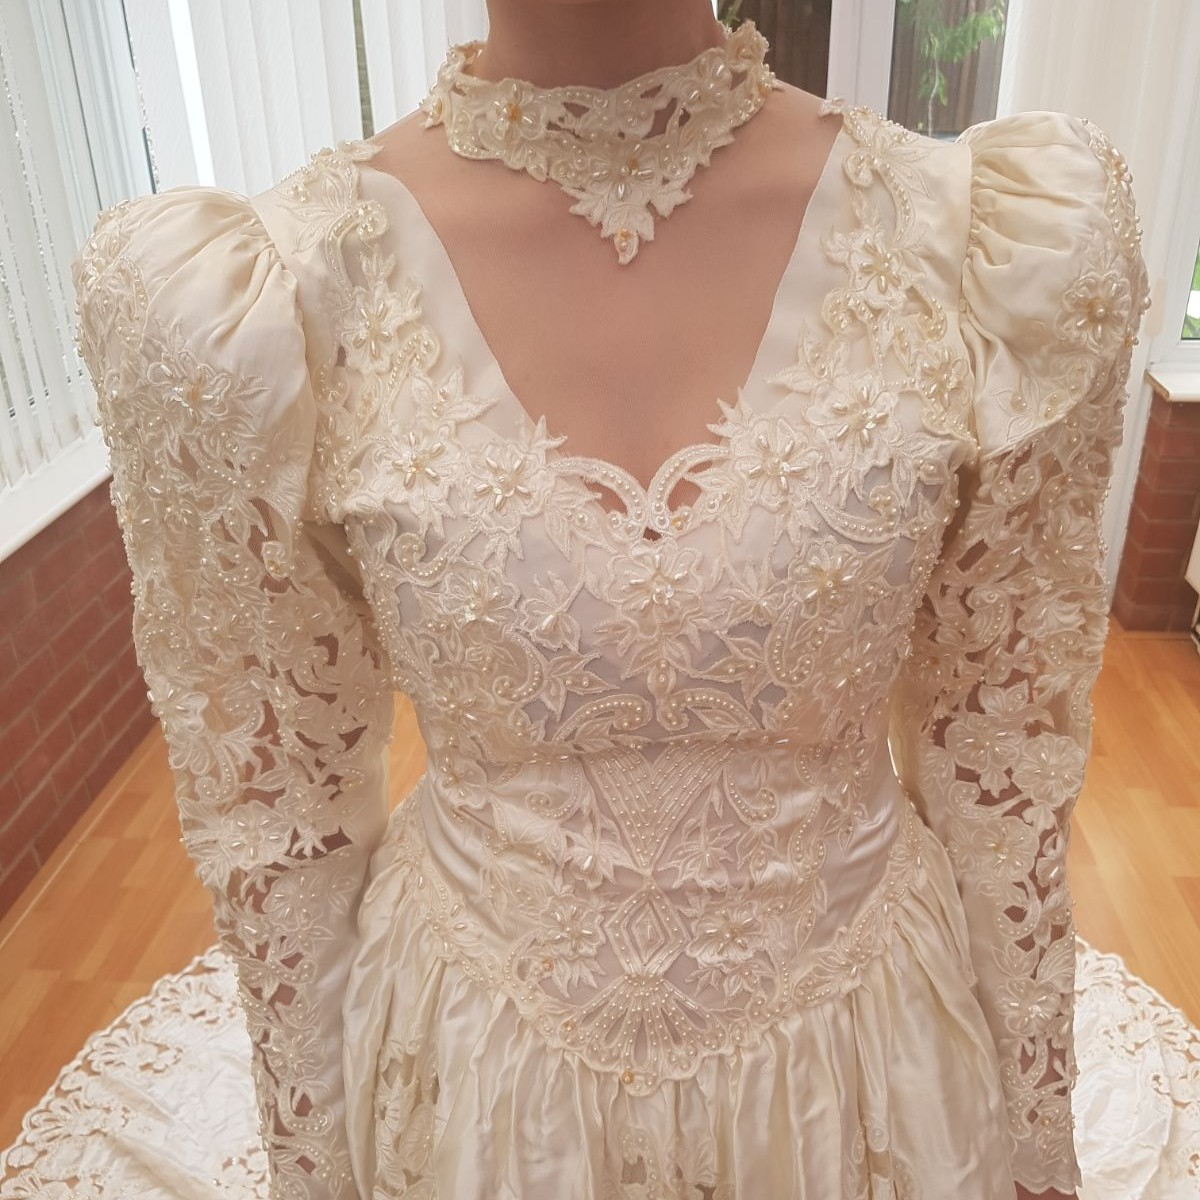 Vintage Lace Wedding Dress With Long Trail And Pearl Depop